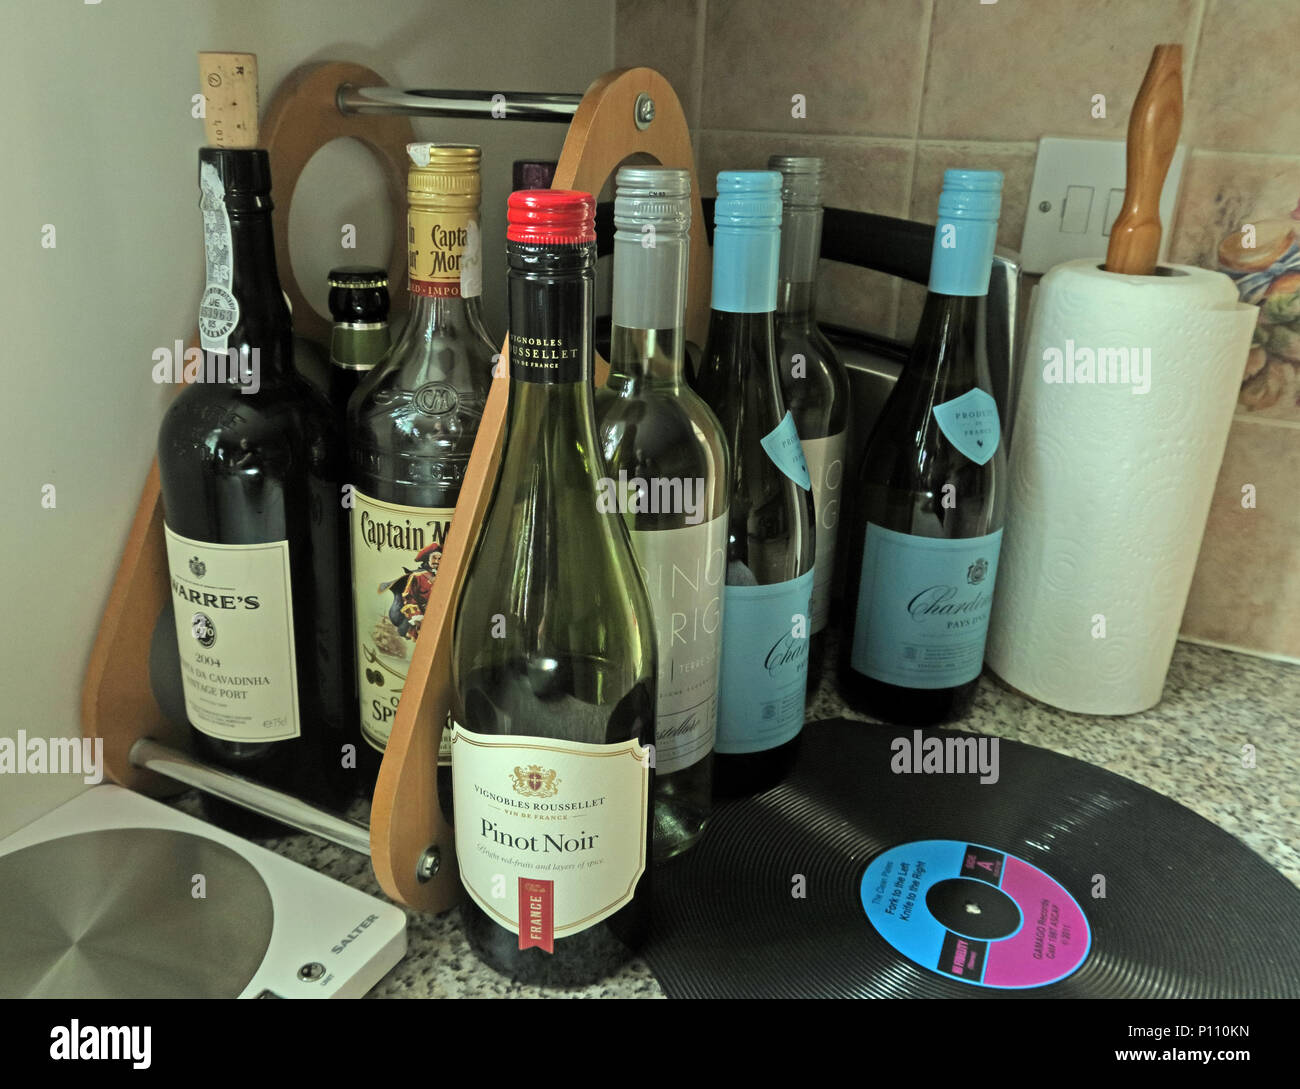 Epidemic of drinking too much alcohol at home, wine beer, rum,port - Stock Image